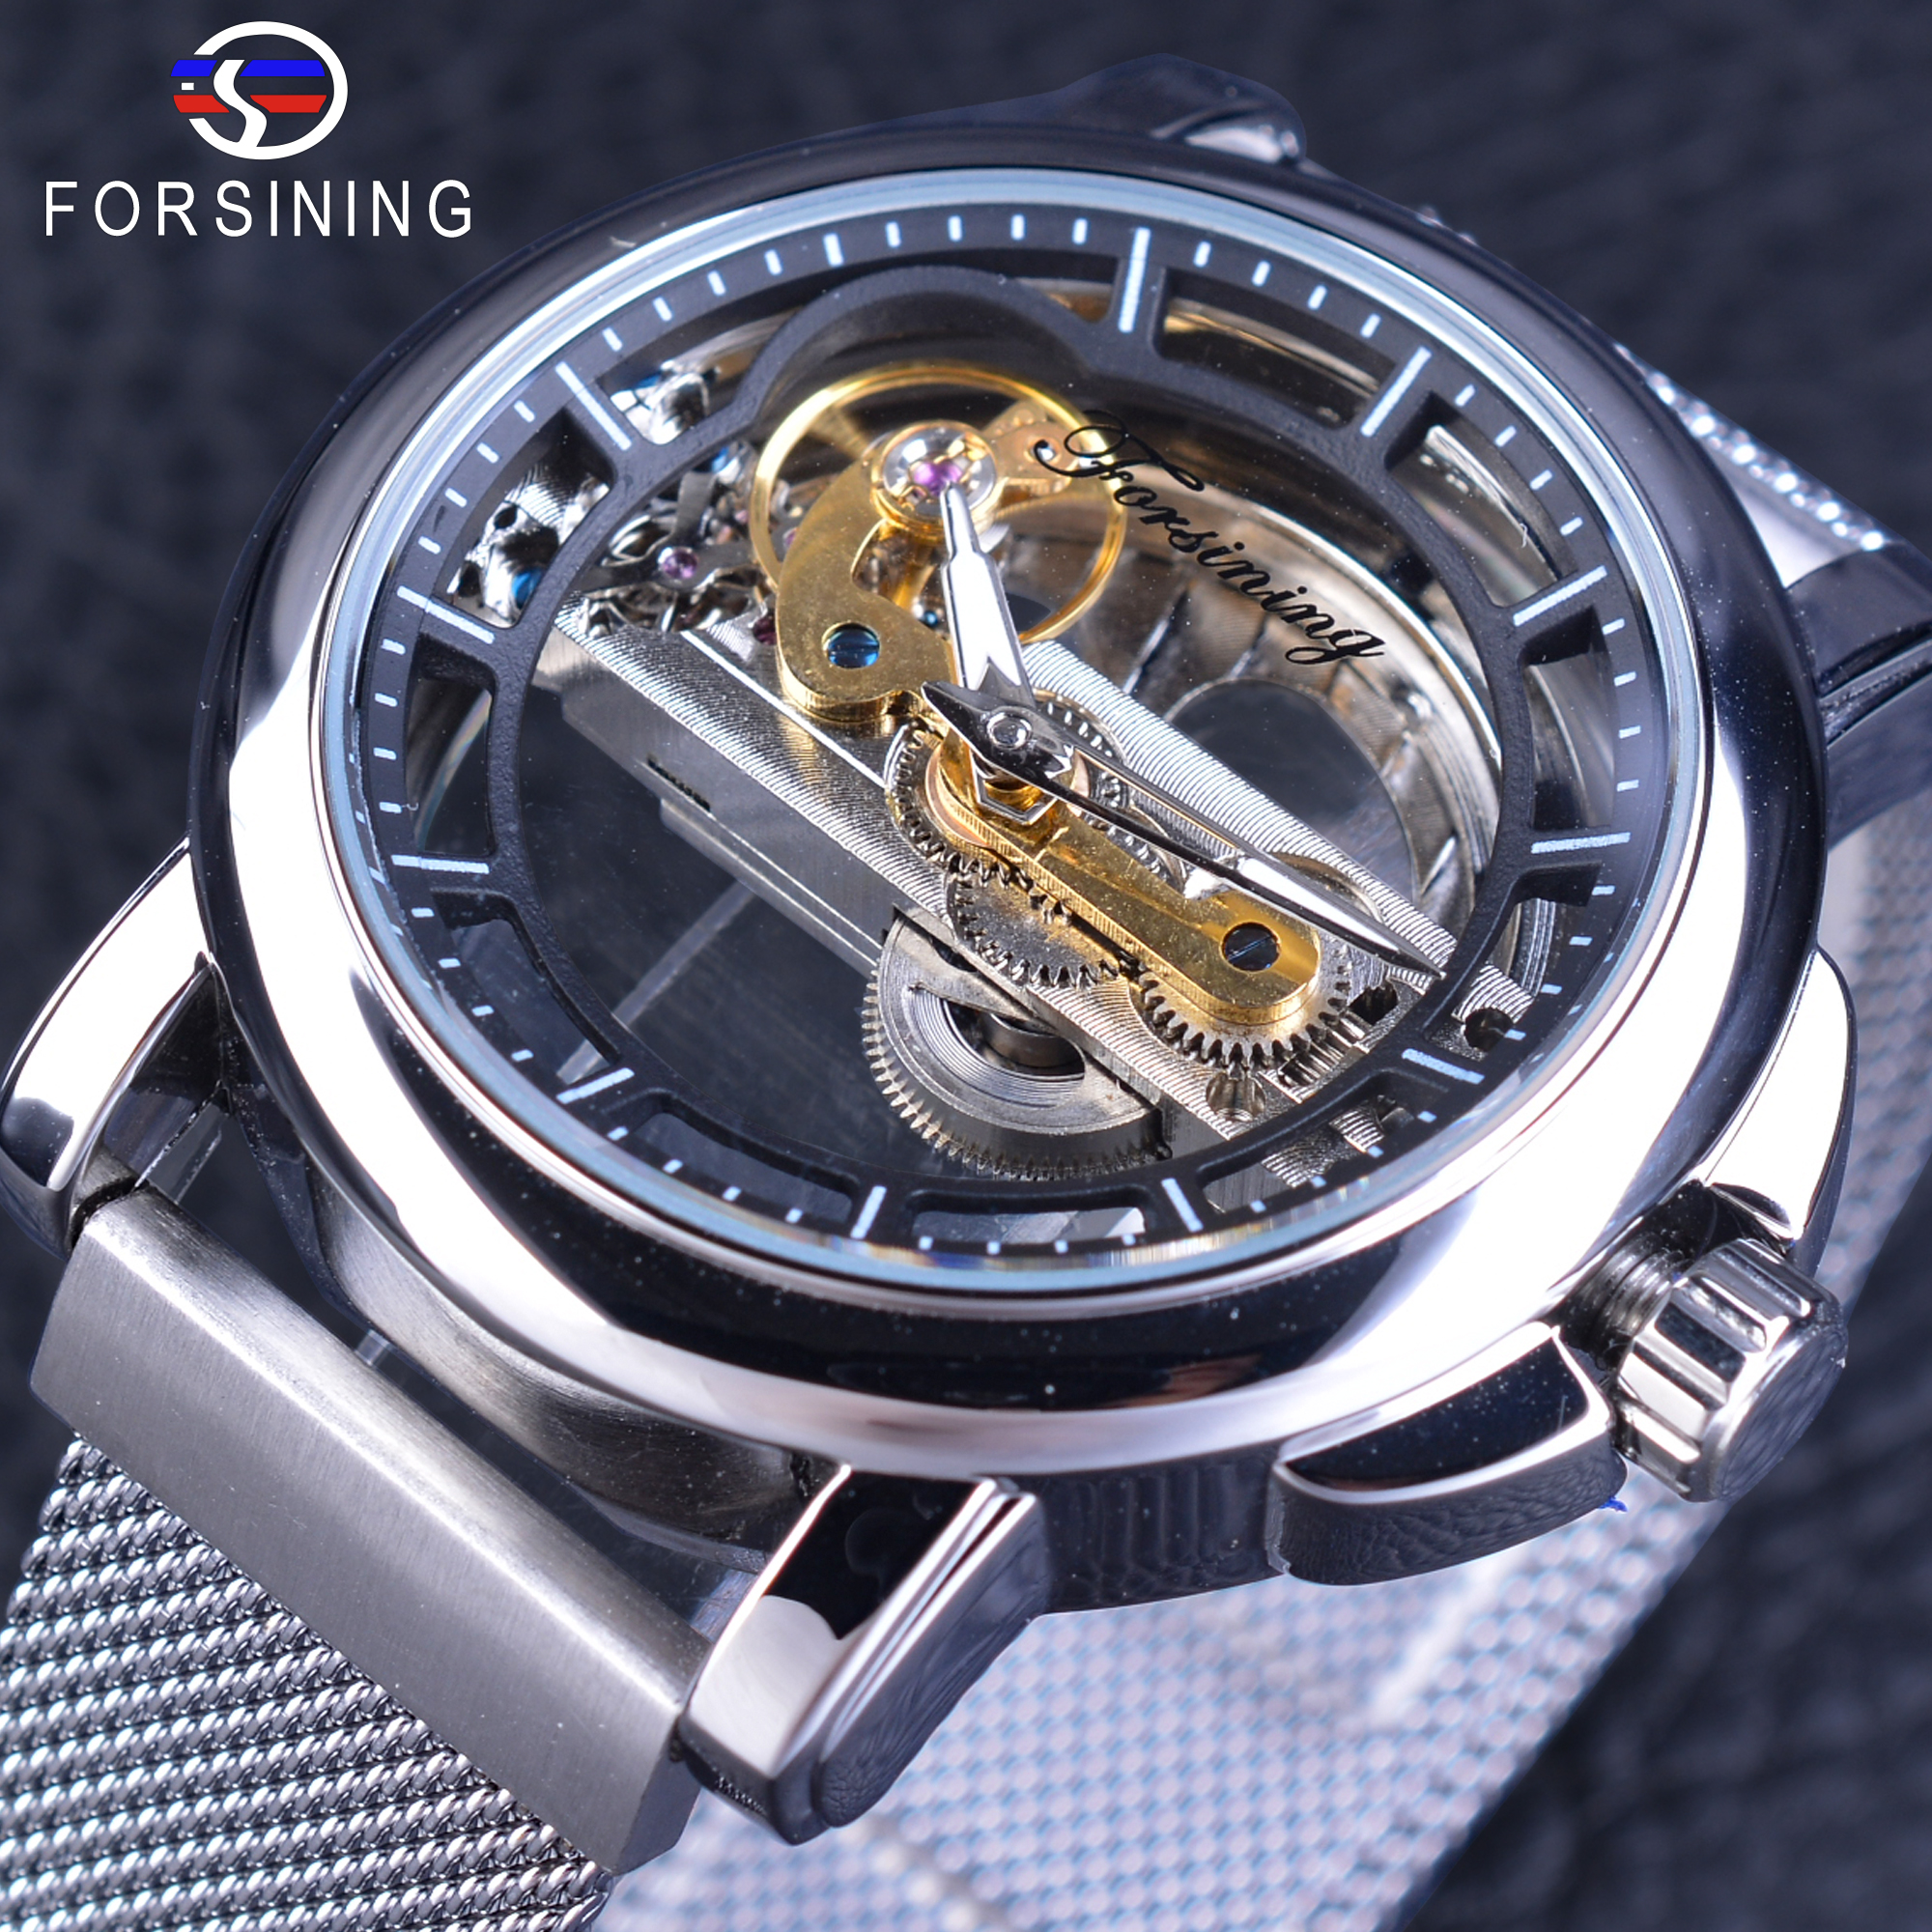 цена Forsining Casual Watch Men's Mechanical Watch Top Brand Luxury Waterproof Skeleton Watches Silver Mesh Stainless Steel Band